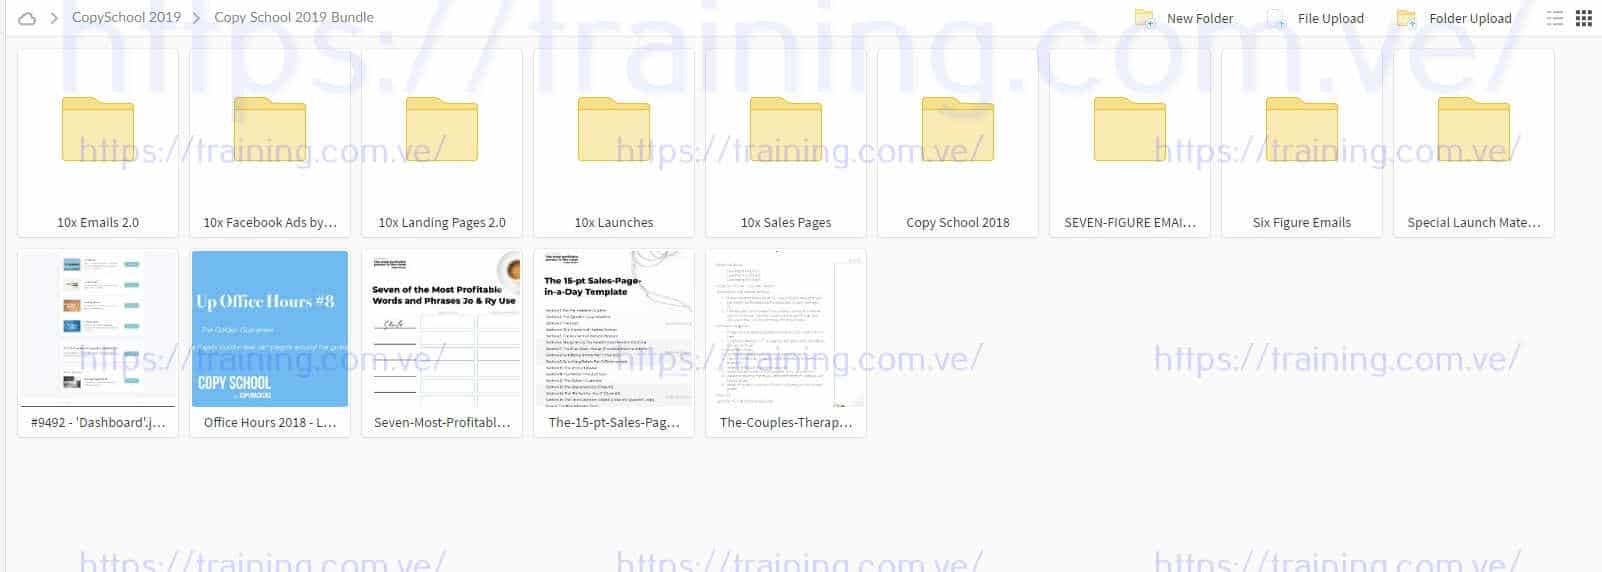 Copy School Bundle 2019 torrent